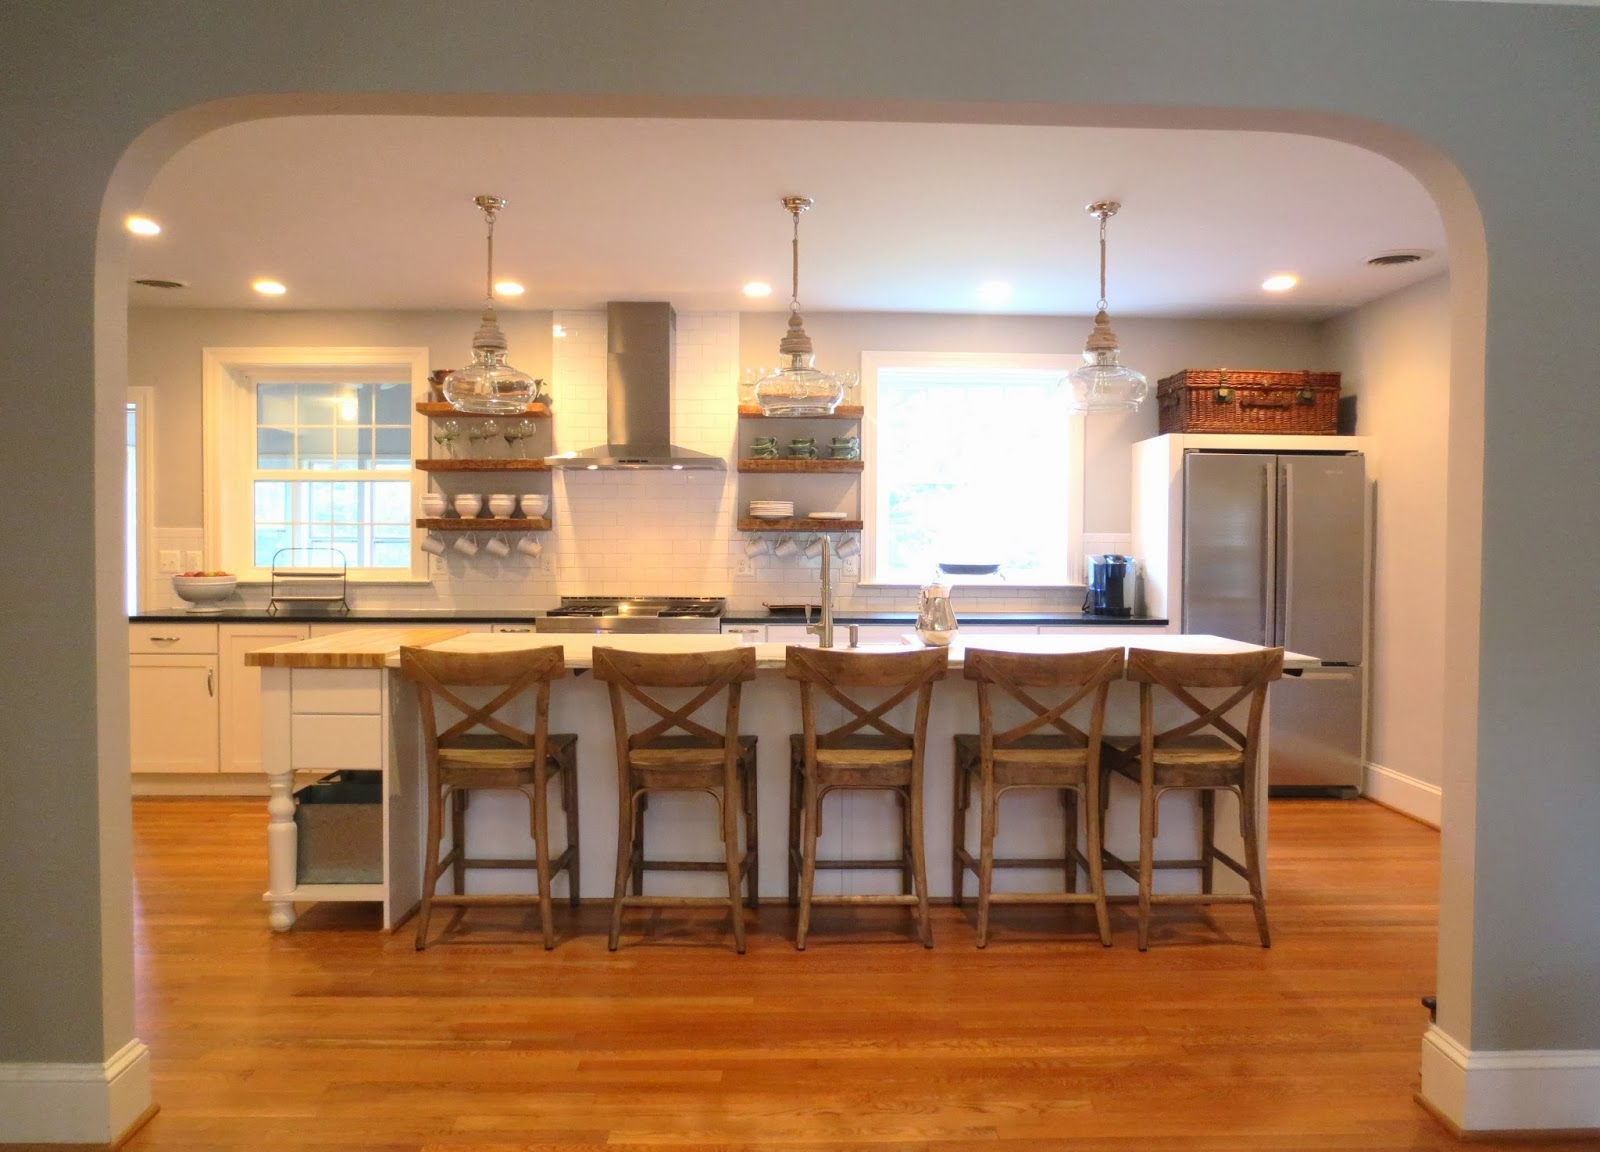 Row House Refuge: Timeless Kitchen Design - Part 1